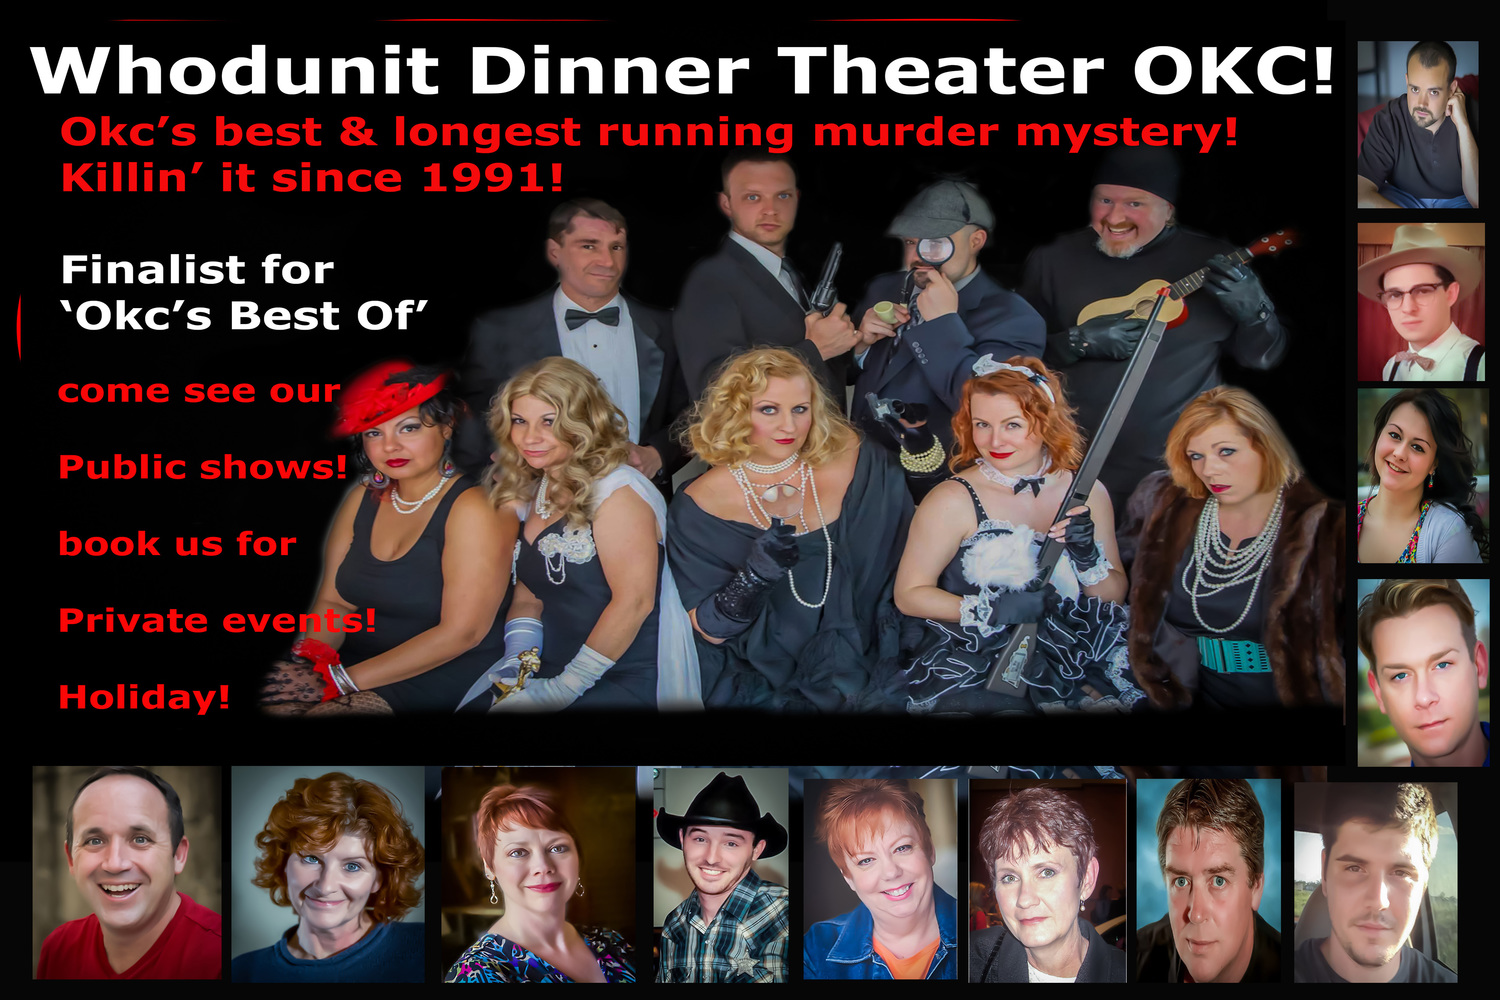 Whodunit Dinner Theater voted OKC's BEST Interactive Comedy Murder Mystery Dinner Theater!